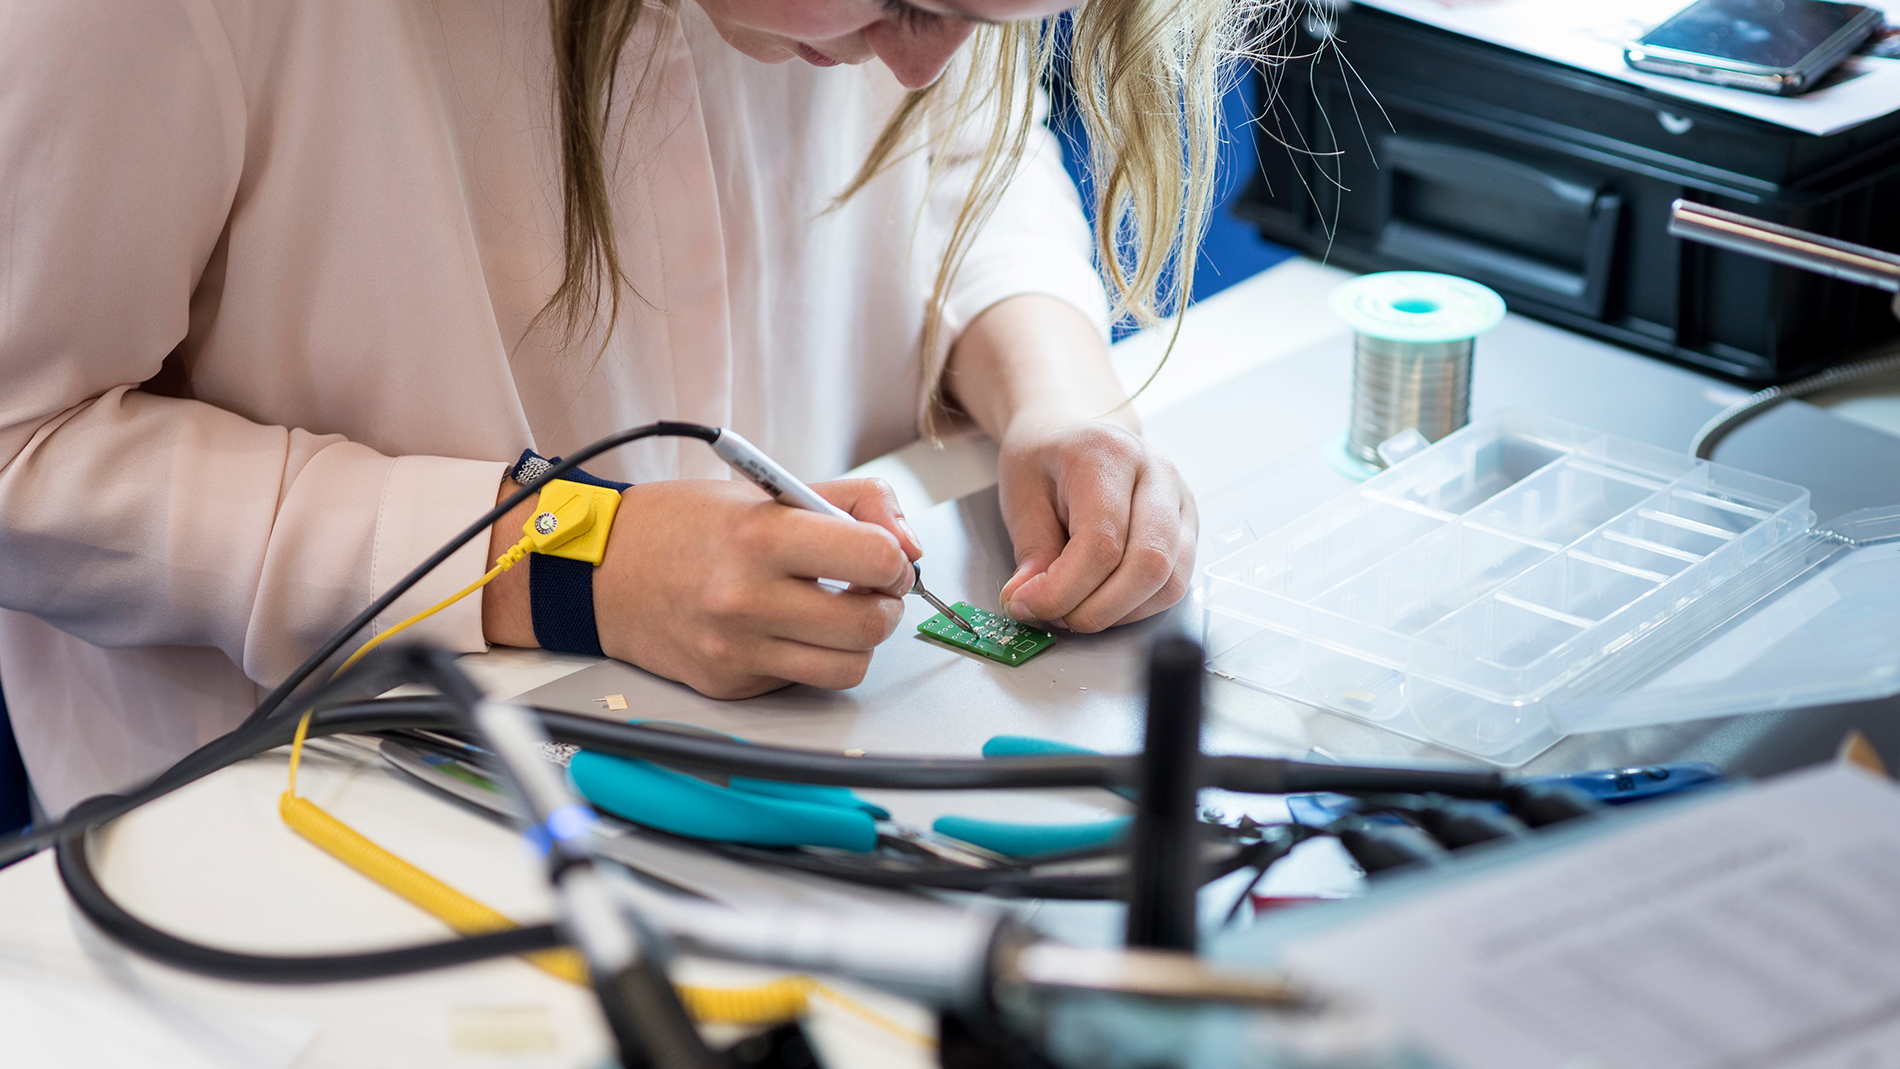 Hand soldering competition